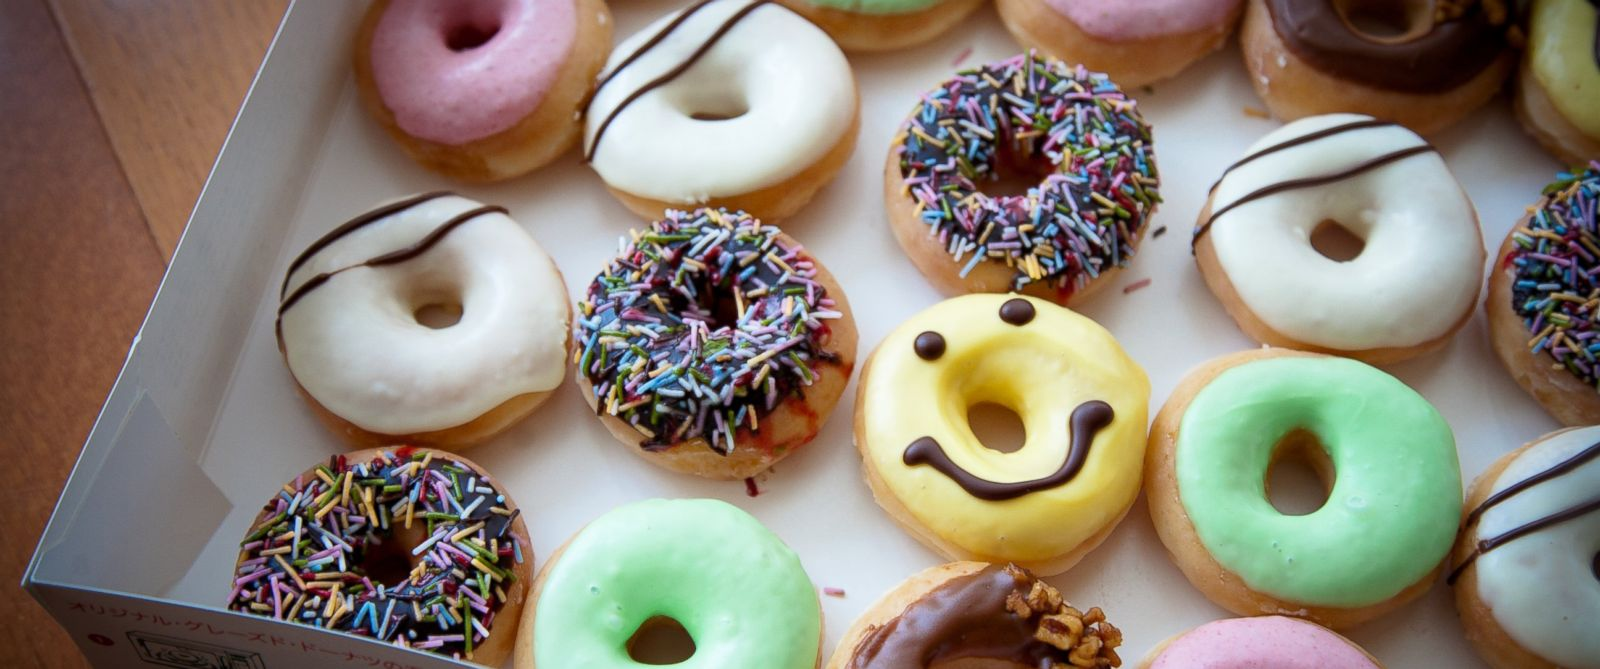 National Doughnut Day—a delicious and twisted sweet mystery...